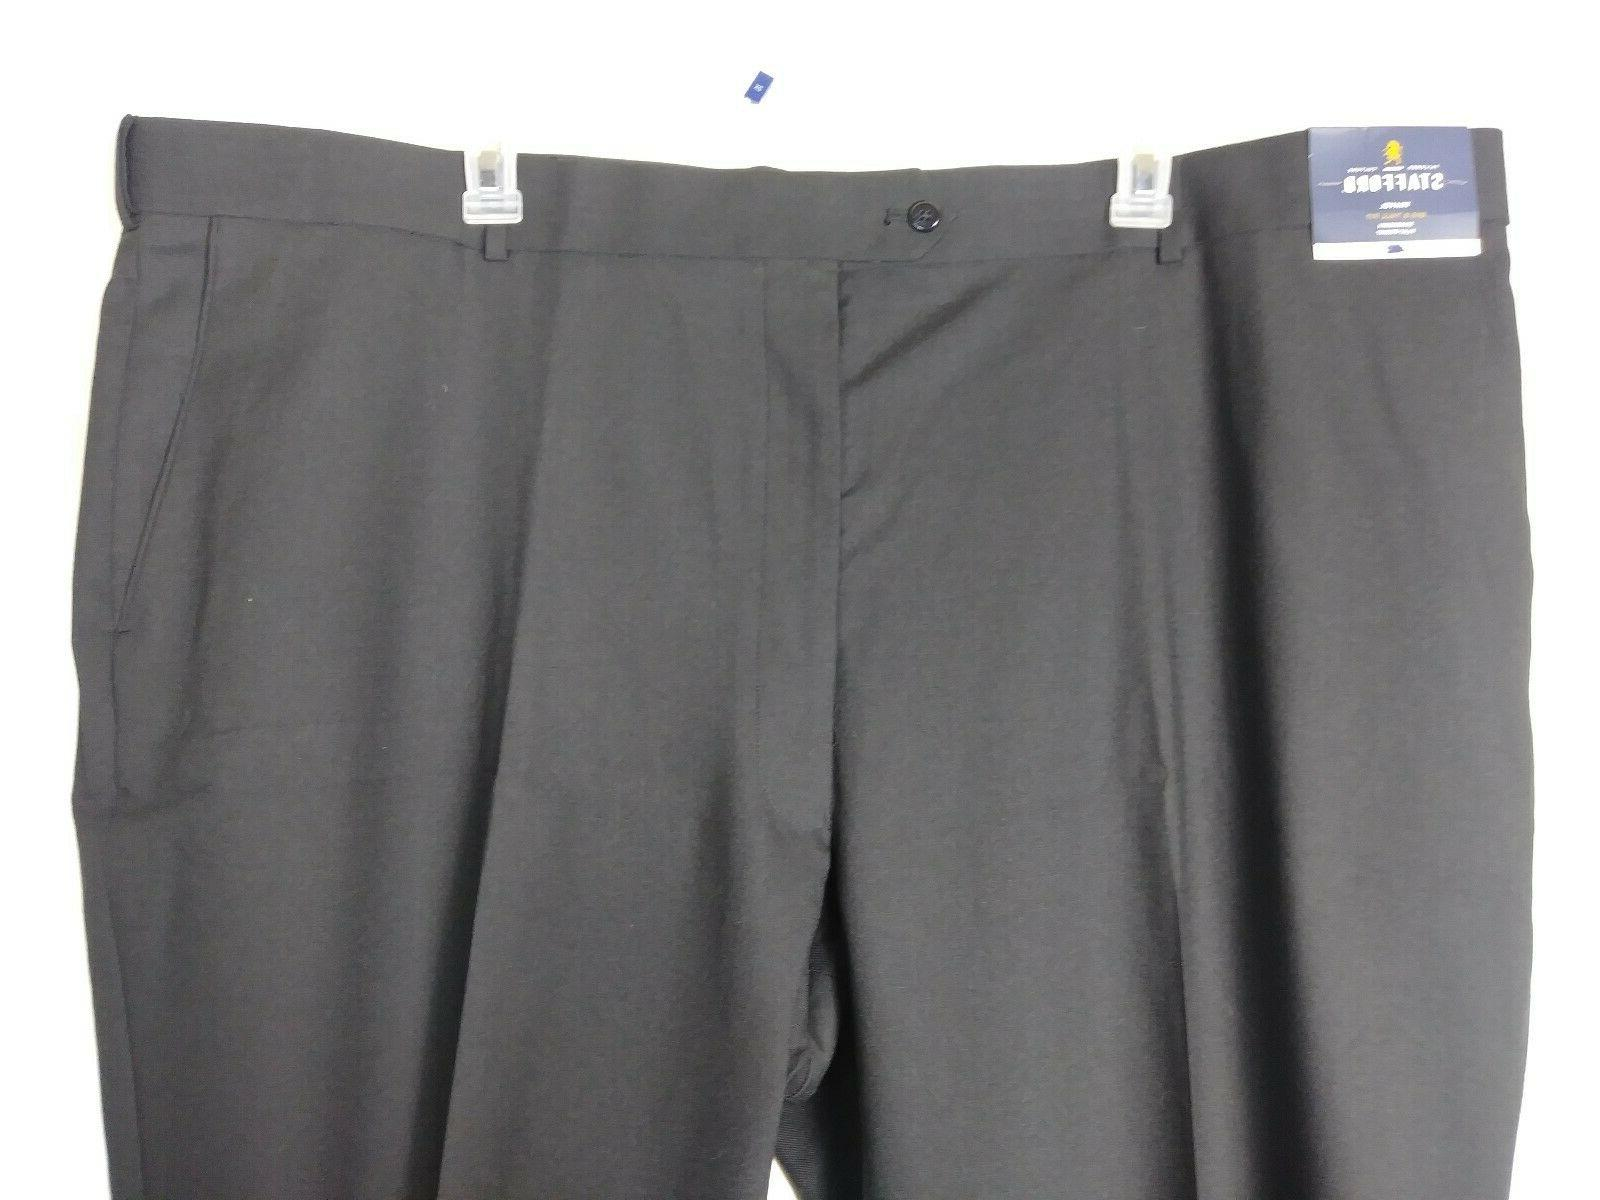 NEW Stafford Mens Dress Pants Size Travel Front